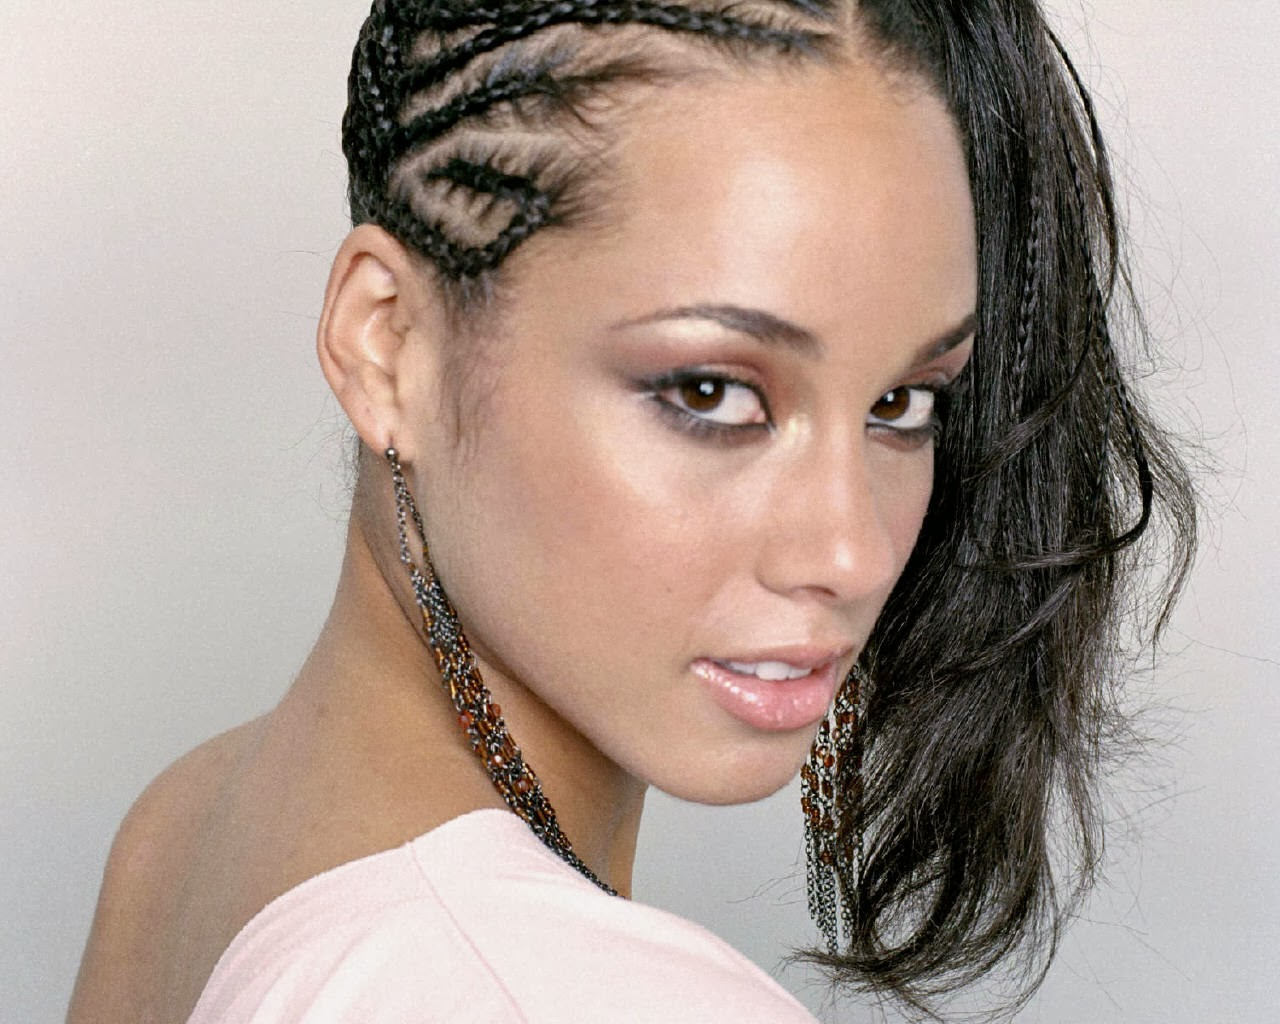 Hairstyle Gallery : Alicia Keys Hairstyles Hairstyles Photos